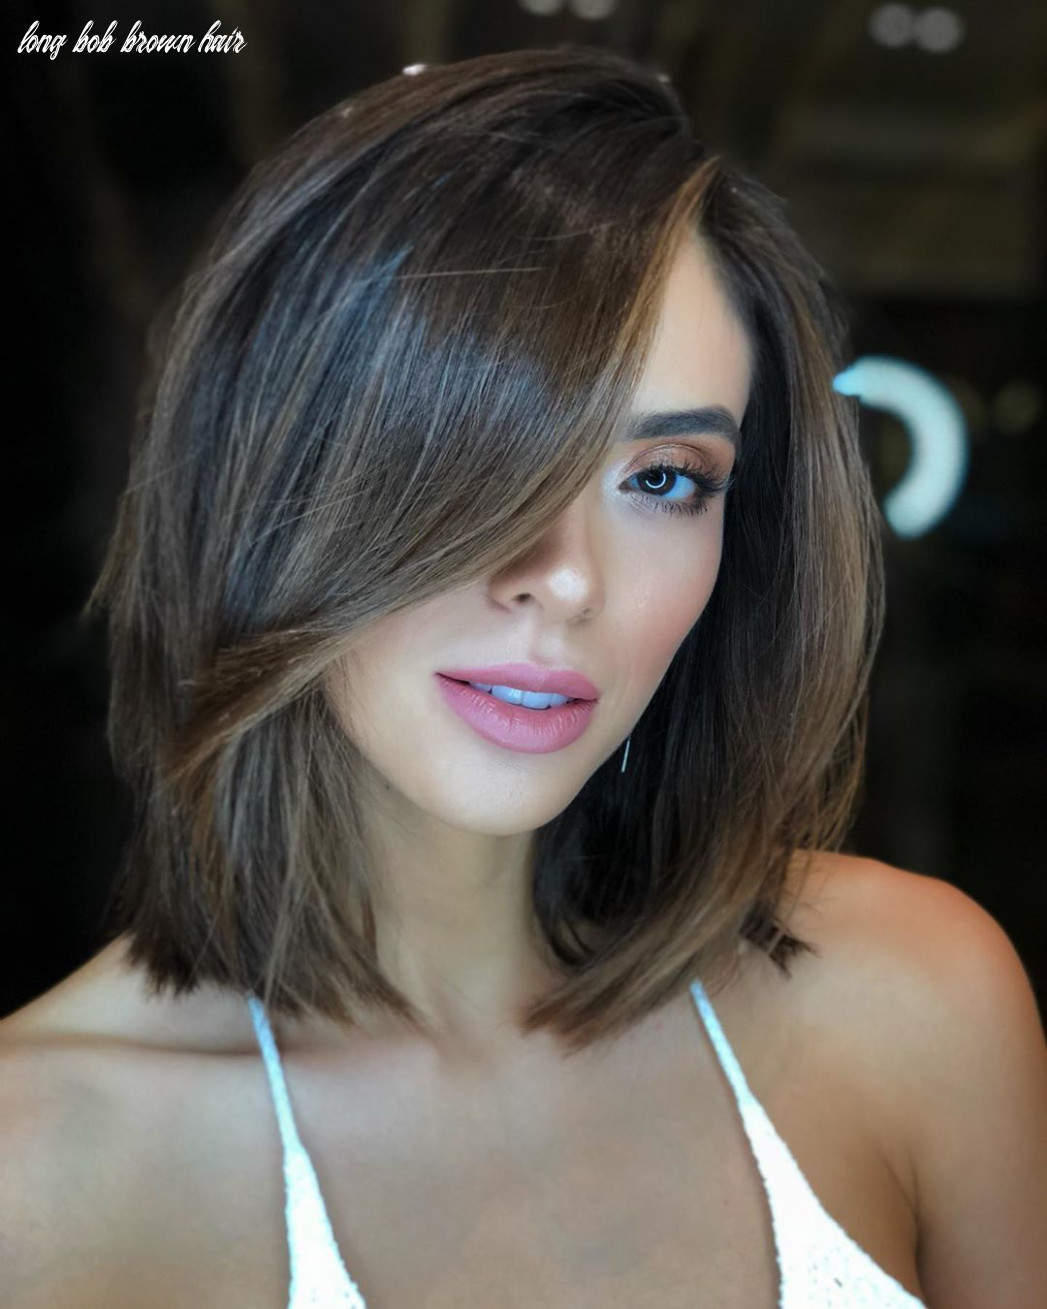 12 layered bob hairstyles to inspire your next haircut in 12 long bob brown hair